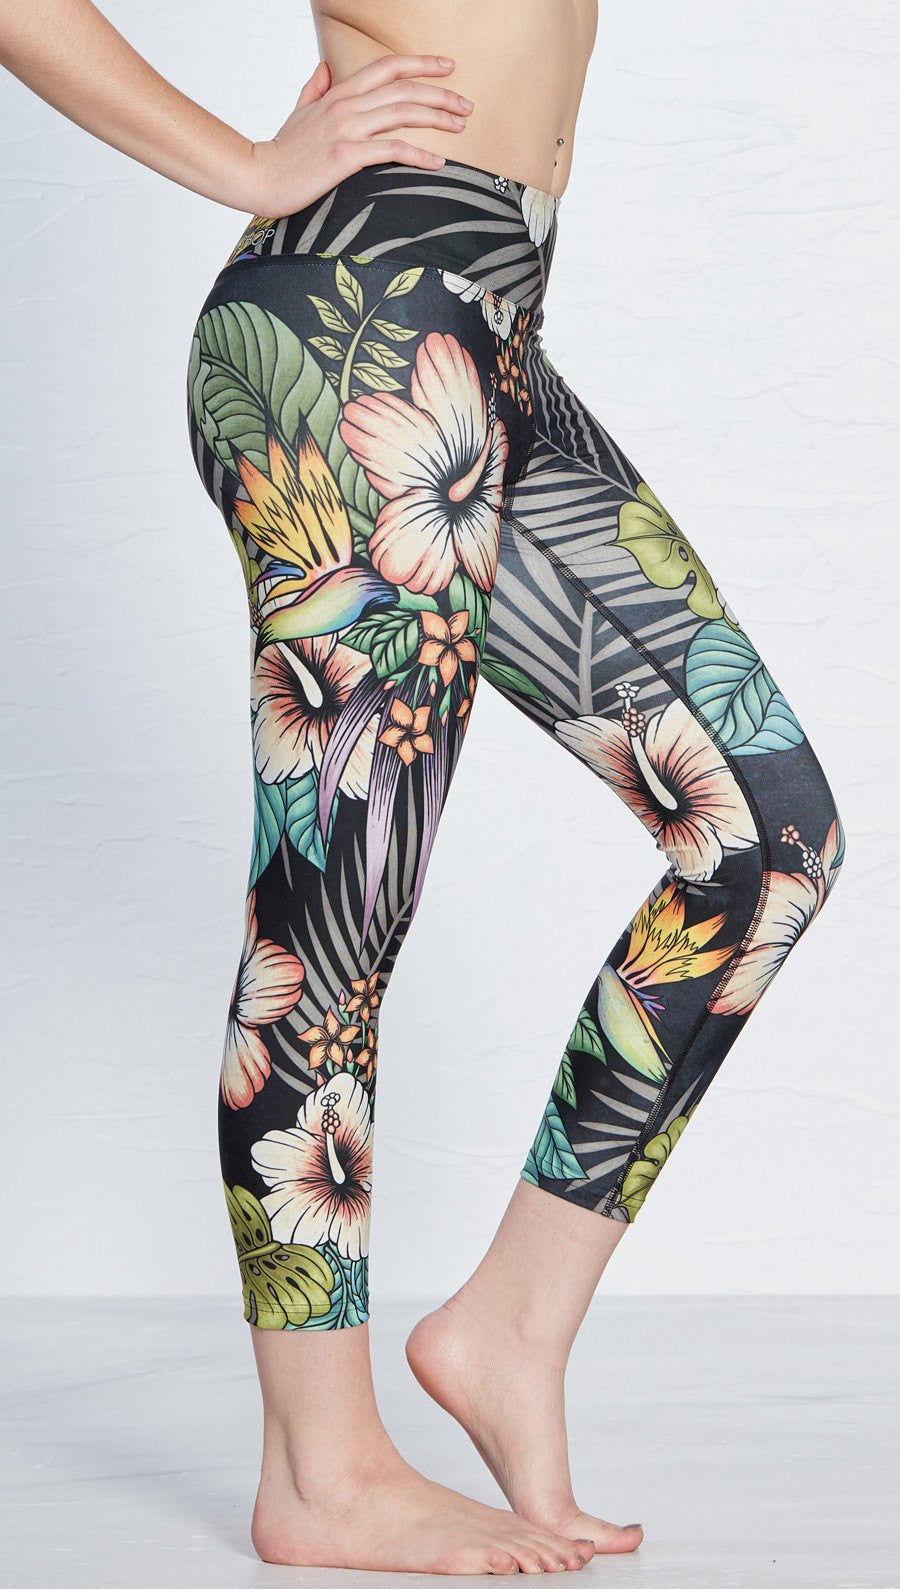 ffcb2c2b2738 close up side view of printed capri leggings with tropical floral design  and black background